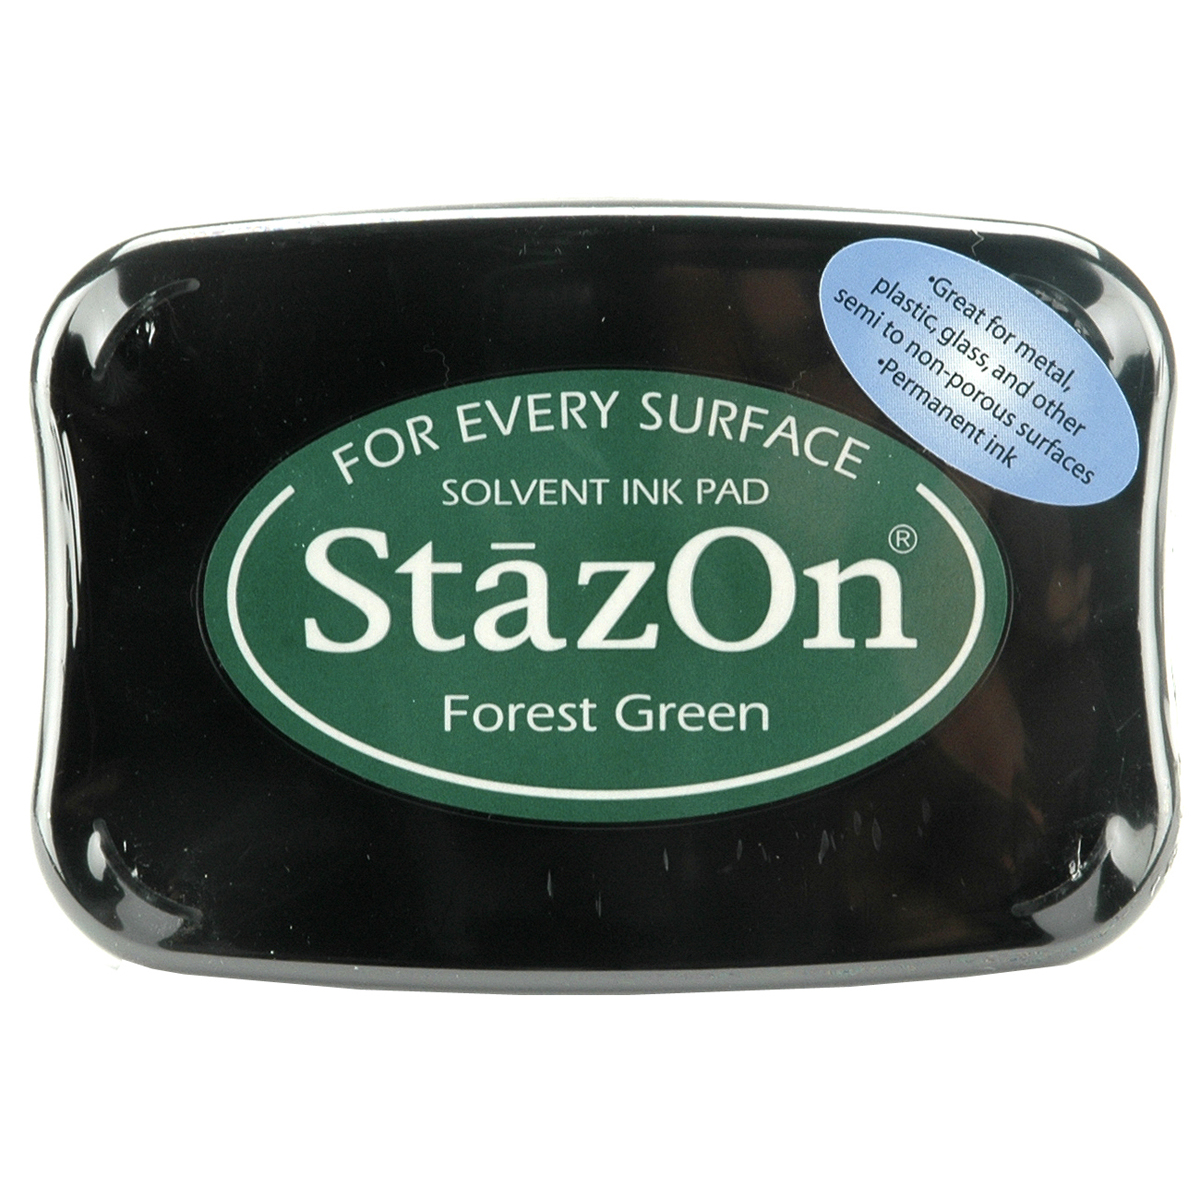 StazOn Solvent Ink Pad-Forest Green